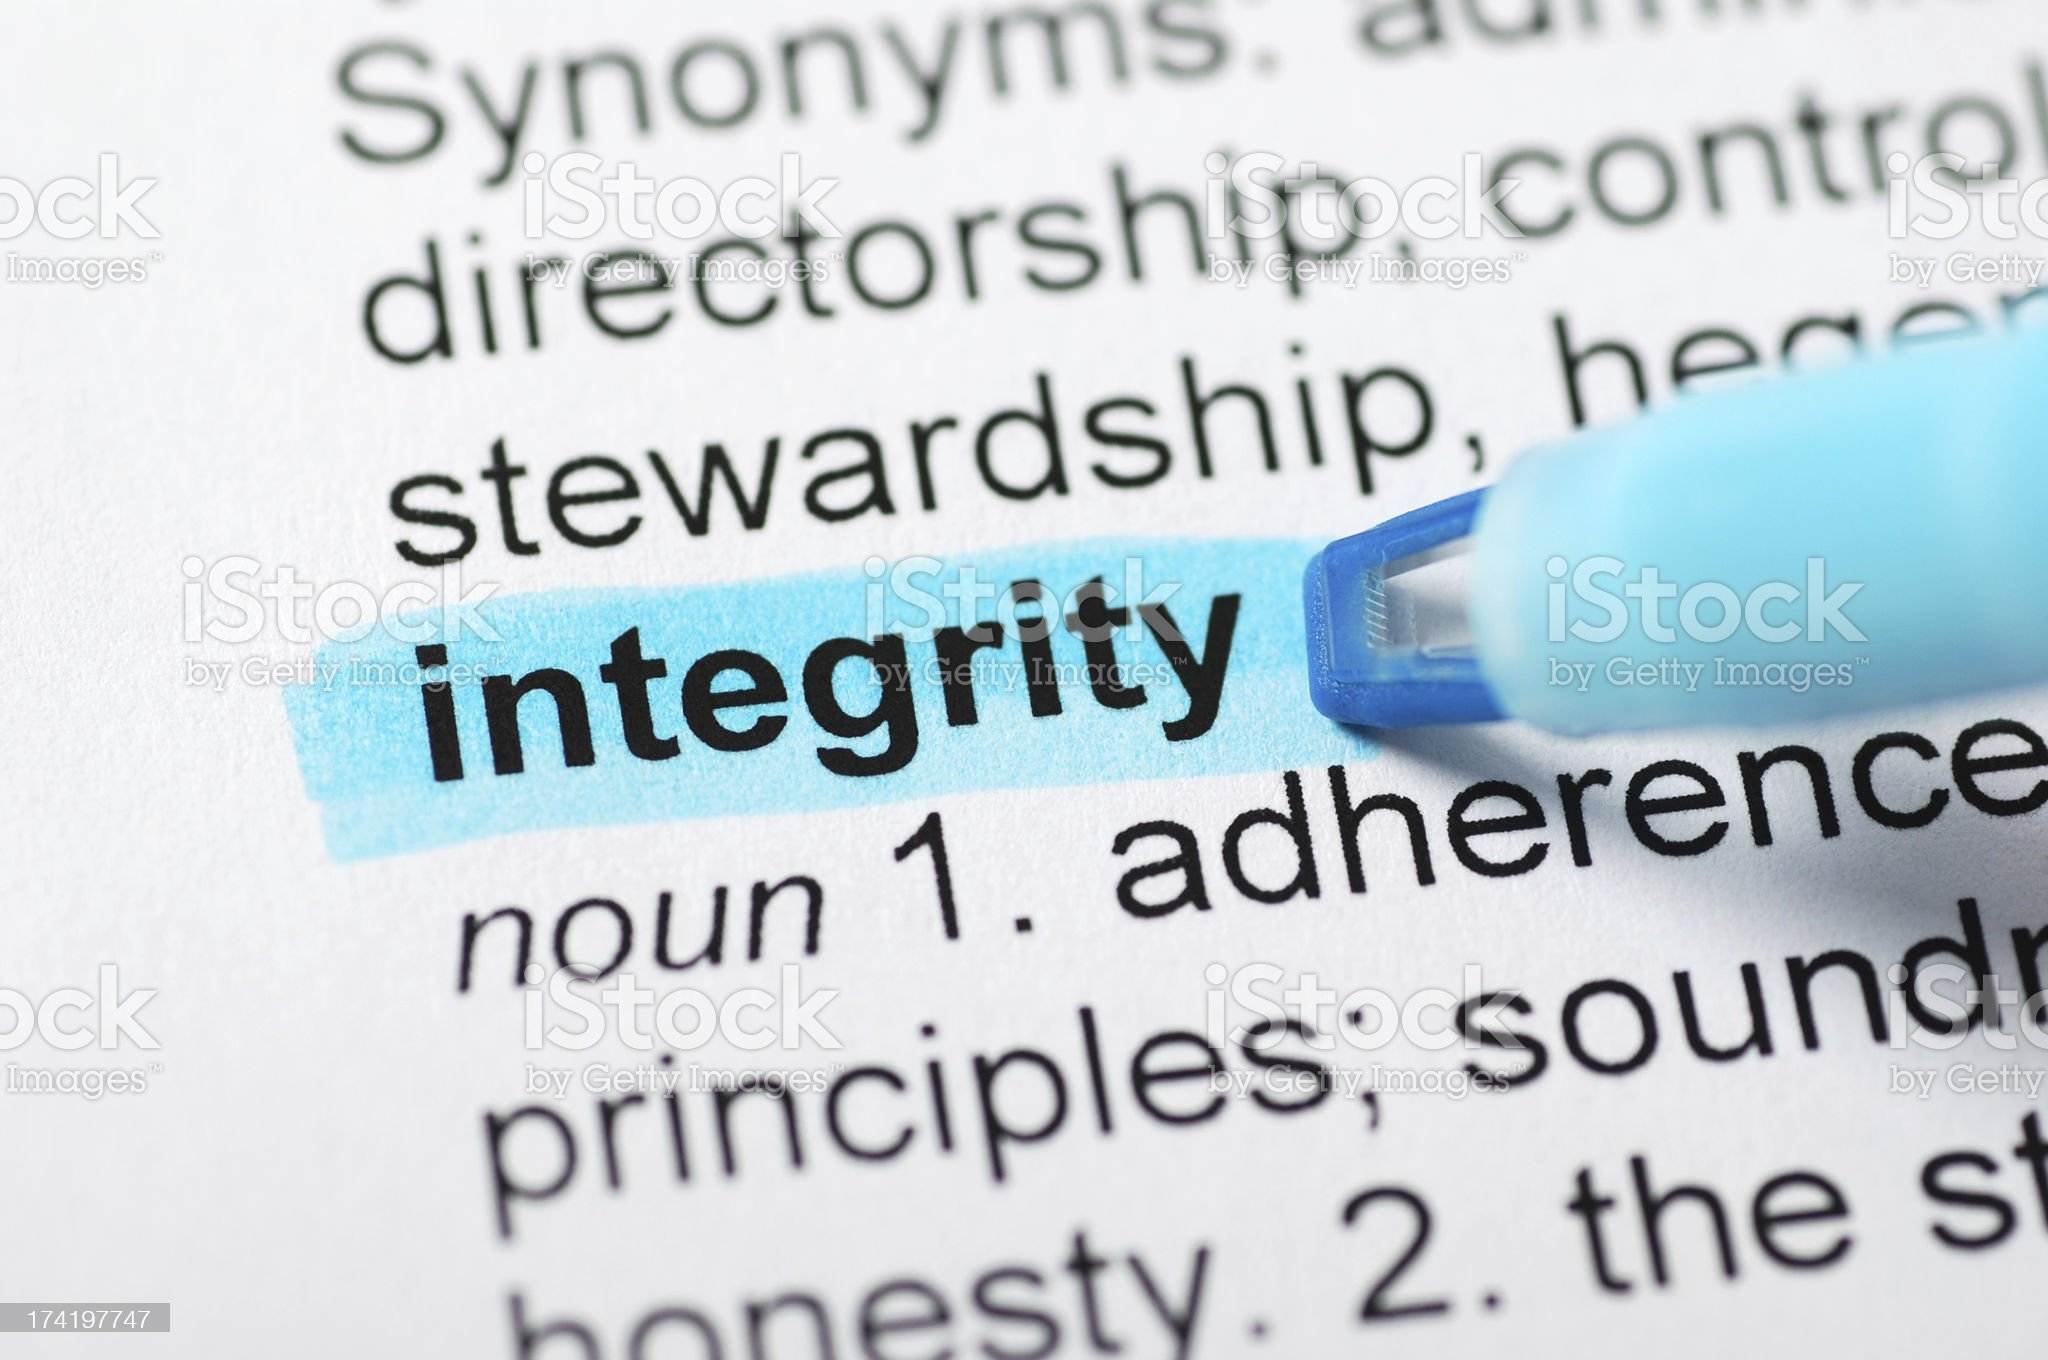 Integrity highlighted in dictionary royalty-free stock photo